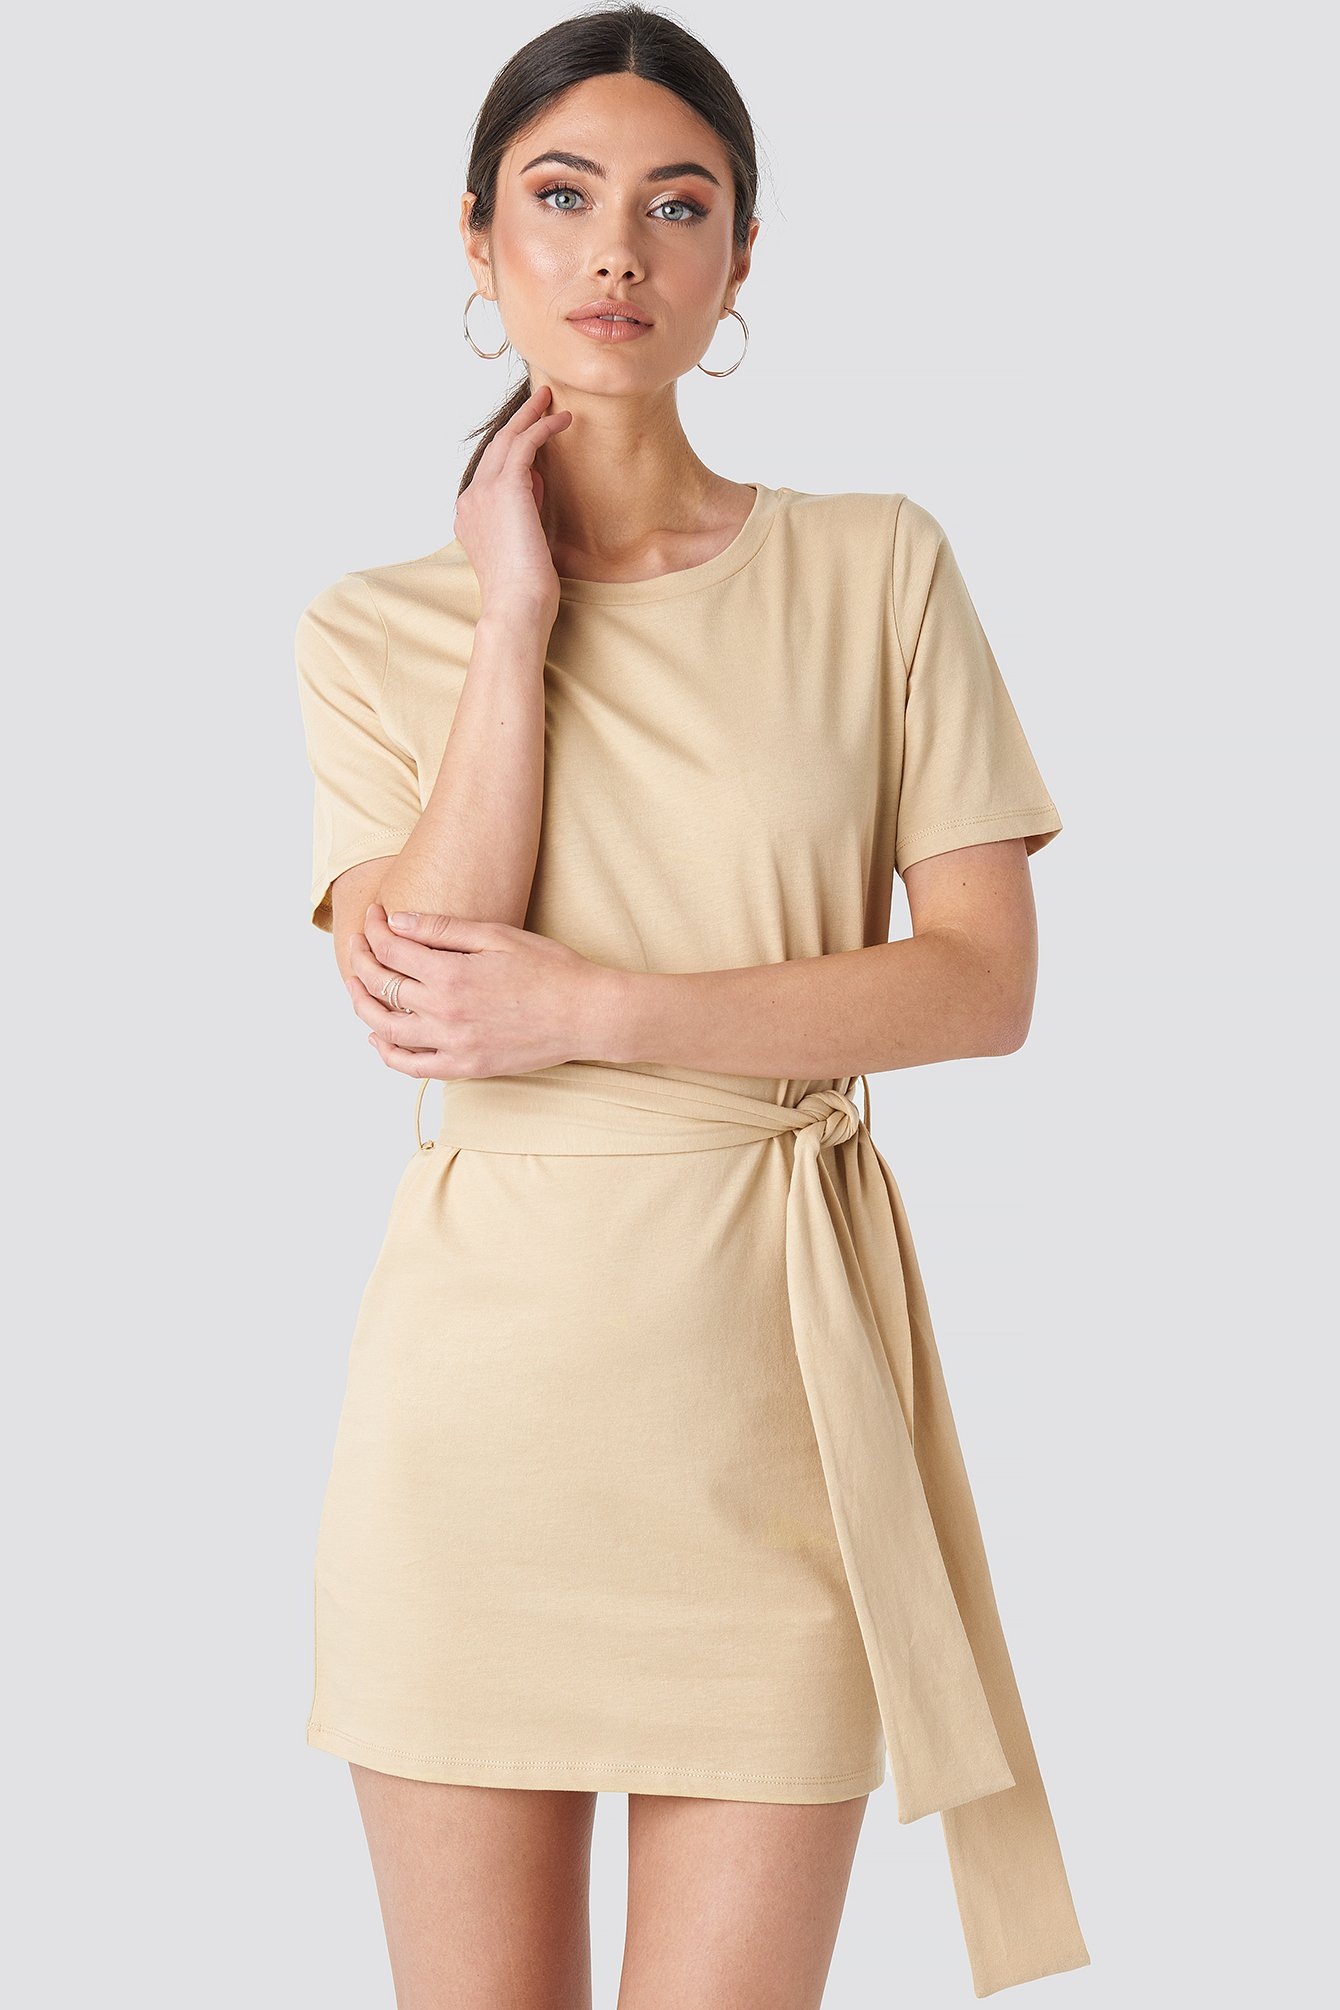 Beige Tie Waist T-shirt Dress